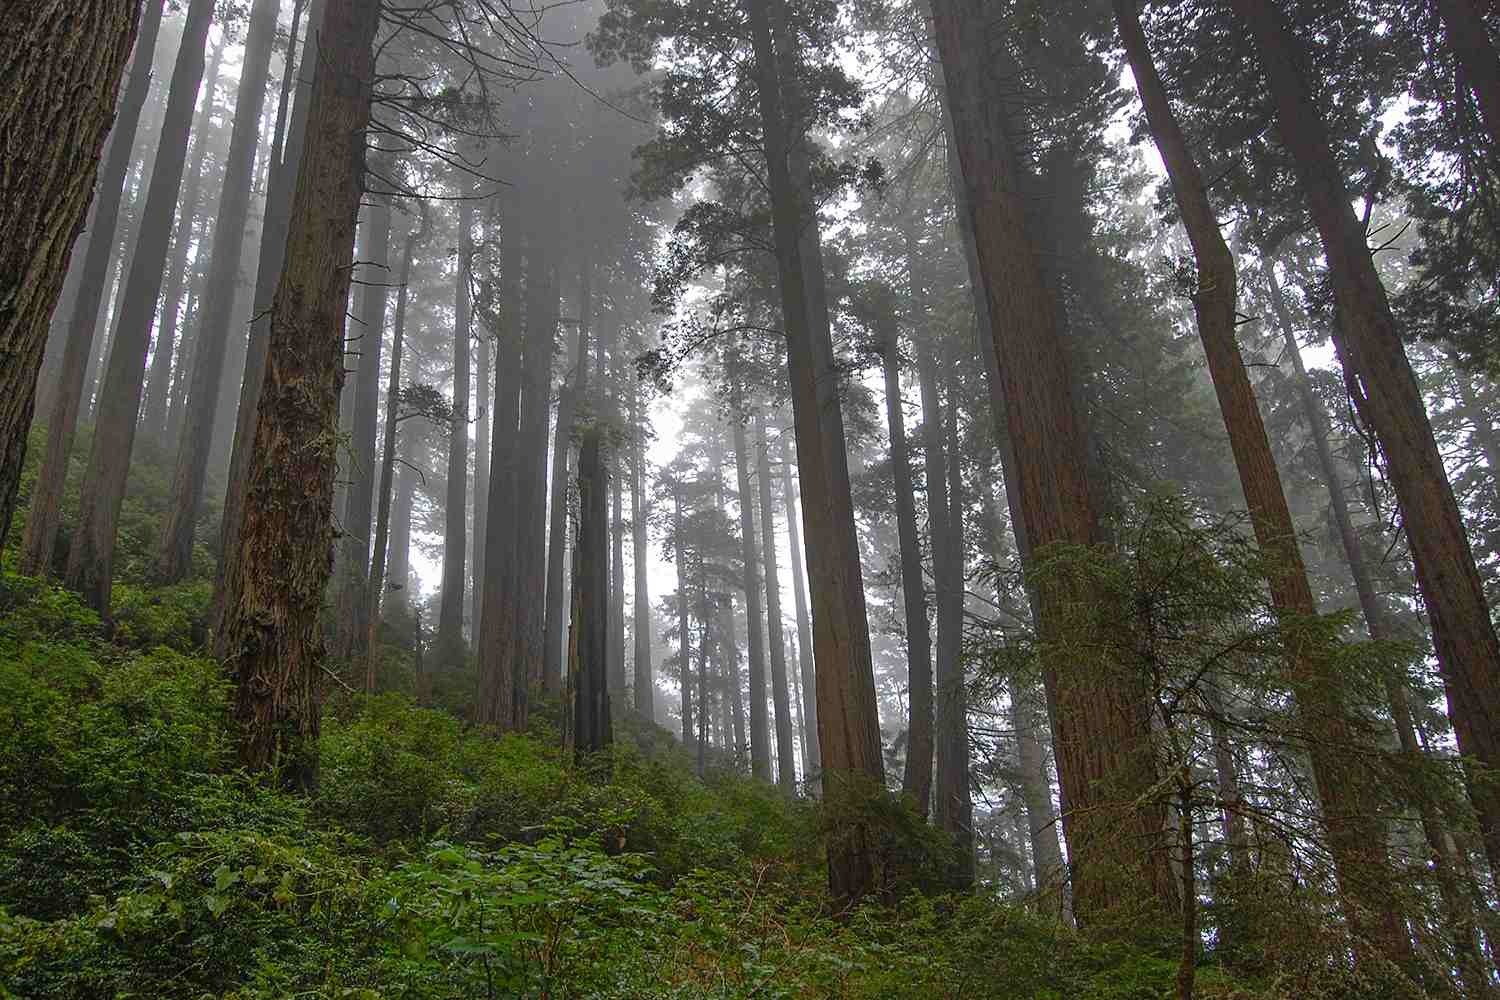 Foggy Morning in the Redwood Forest